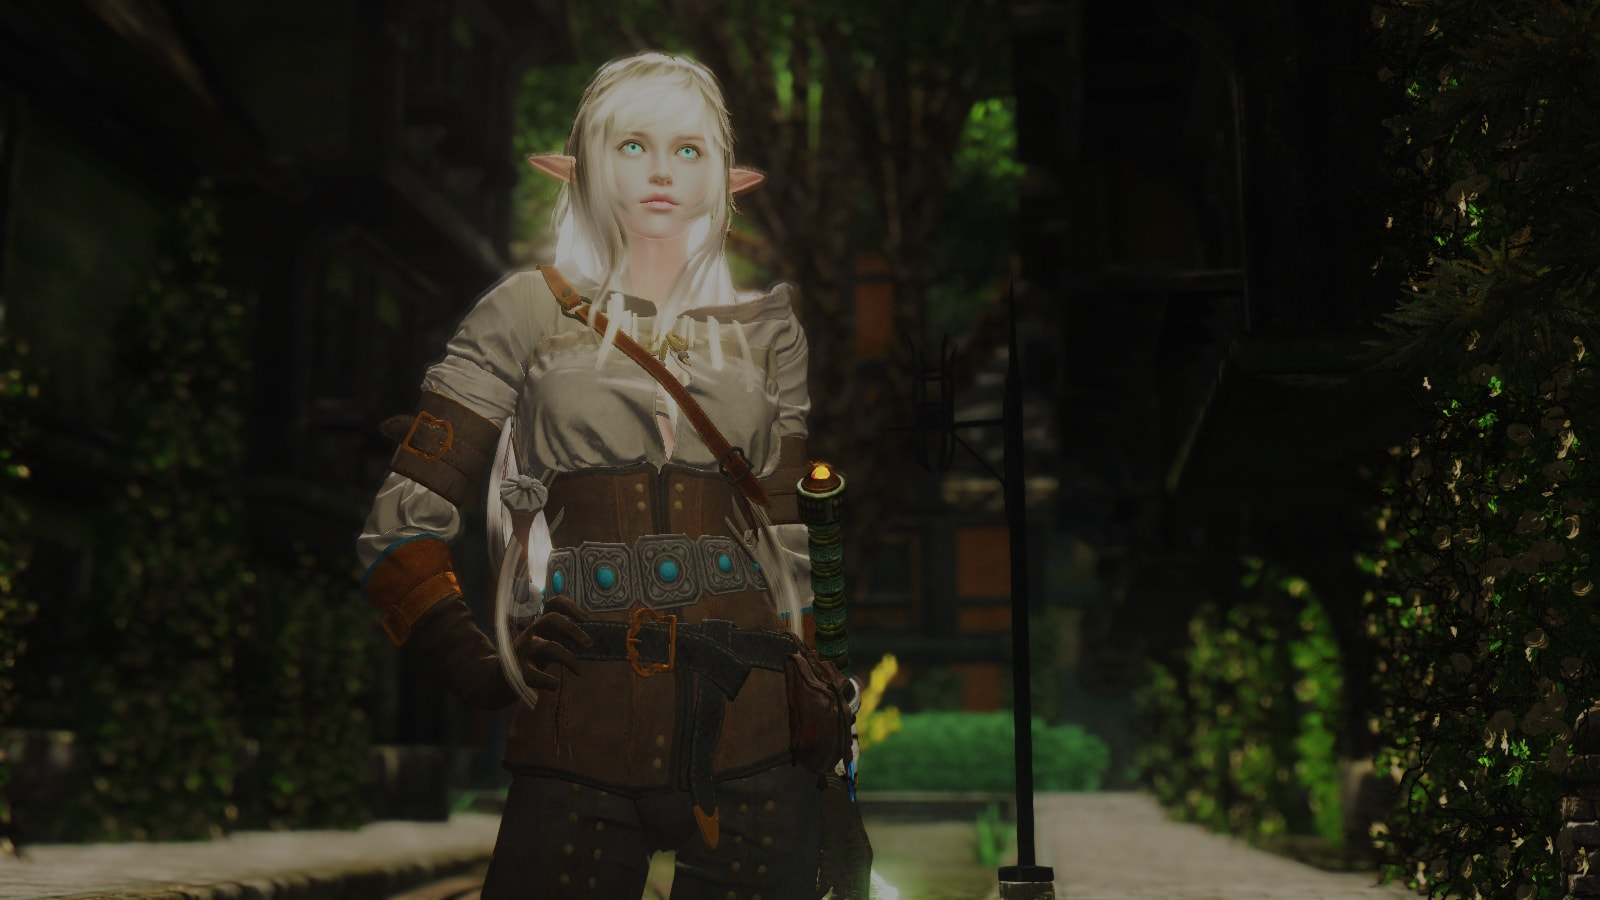 Witcher Ciri Outfit | Броня Цири из Ведьмака